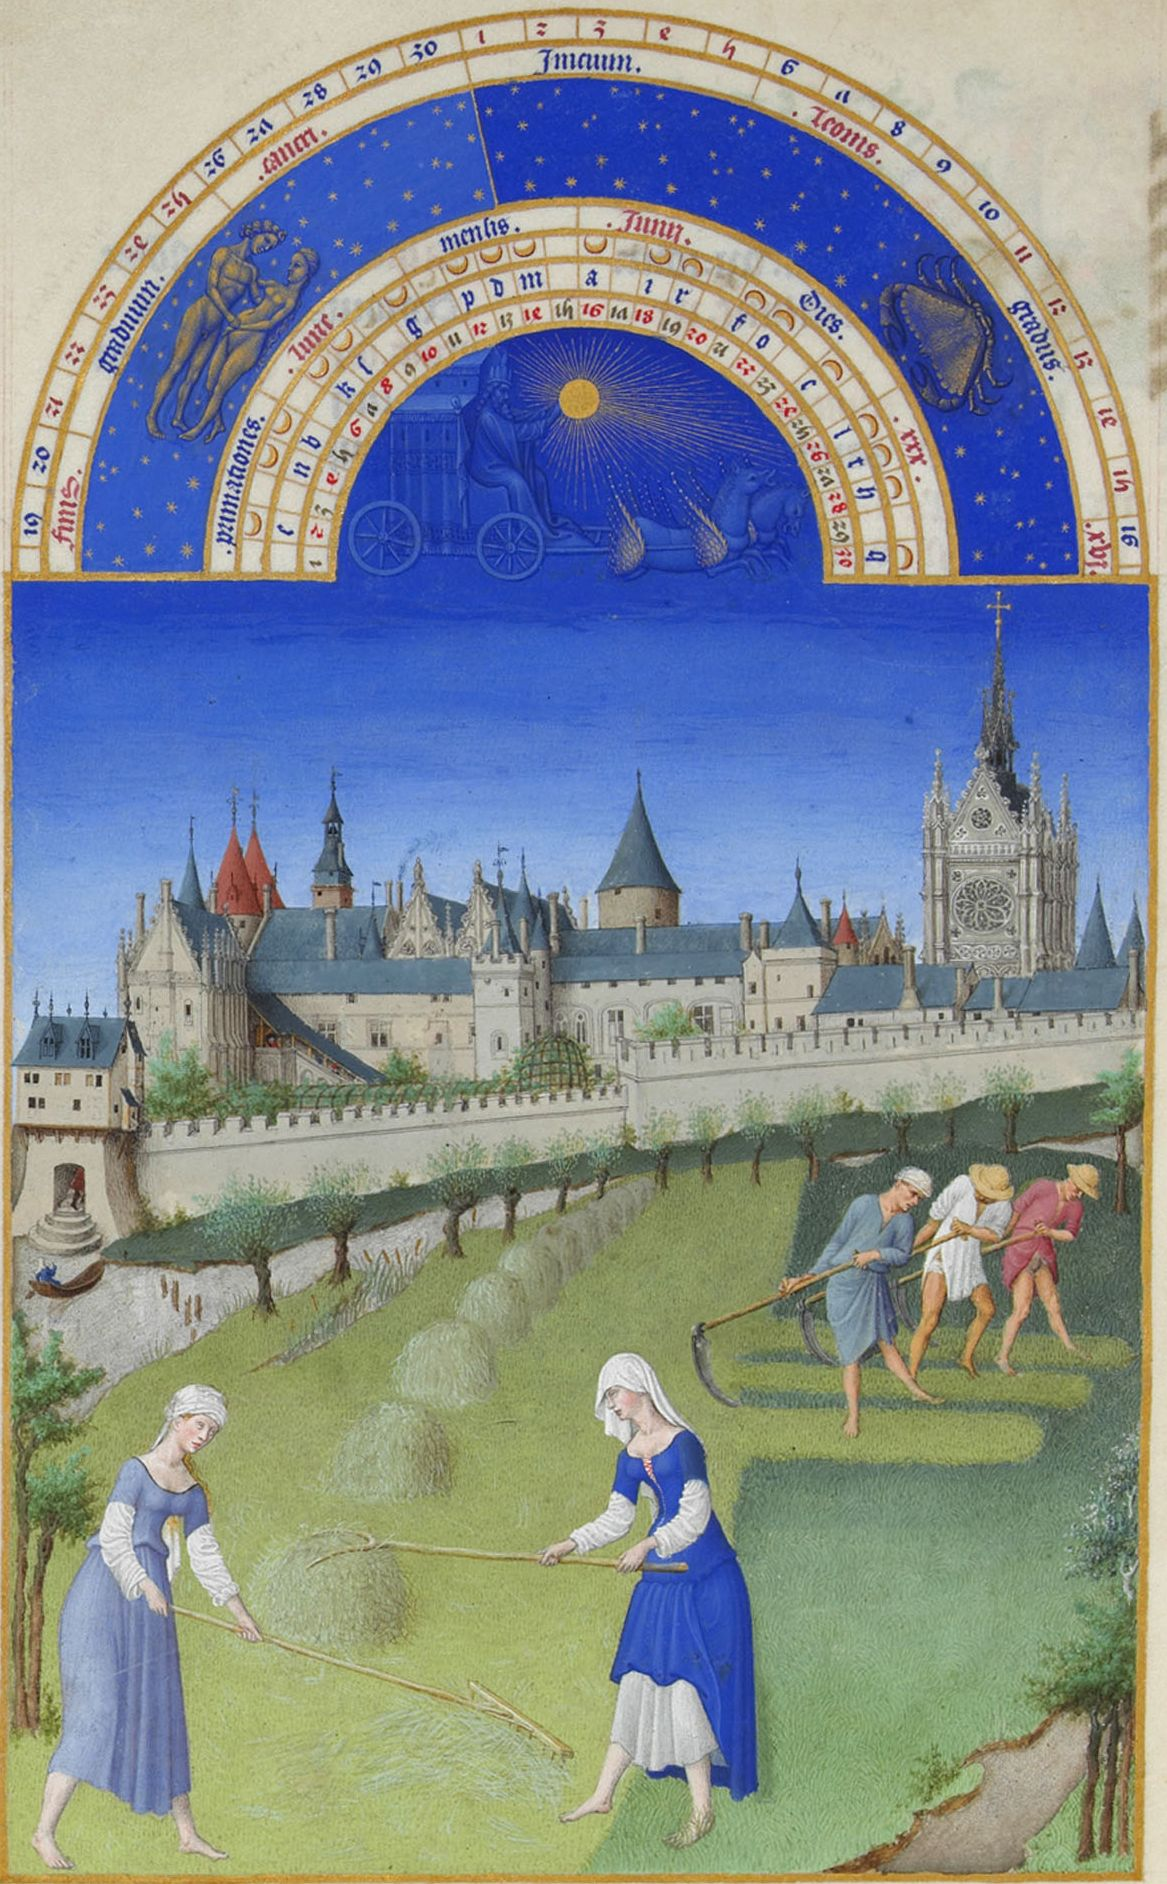 "Limbourg Brothers, ""The Book of Hours."" Haymaking. Place - Paris, Zhyuif meadow on the island, close to the Cité."